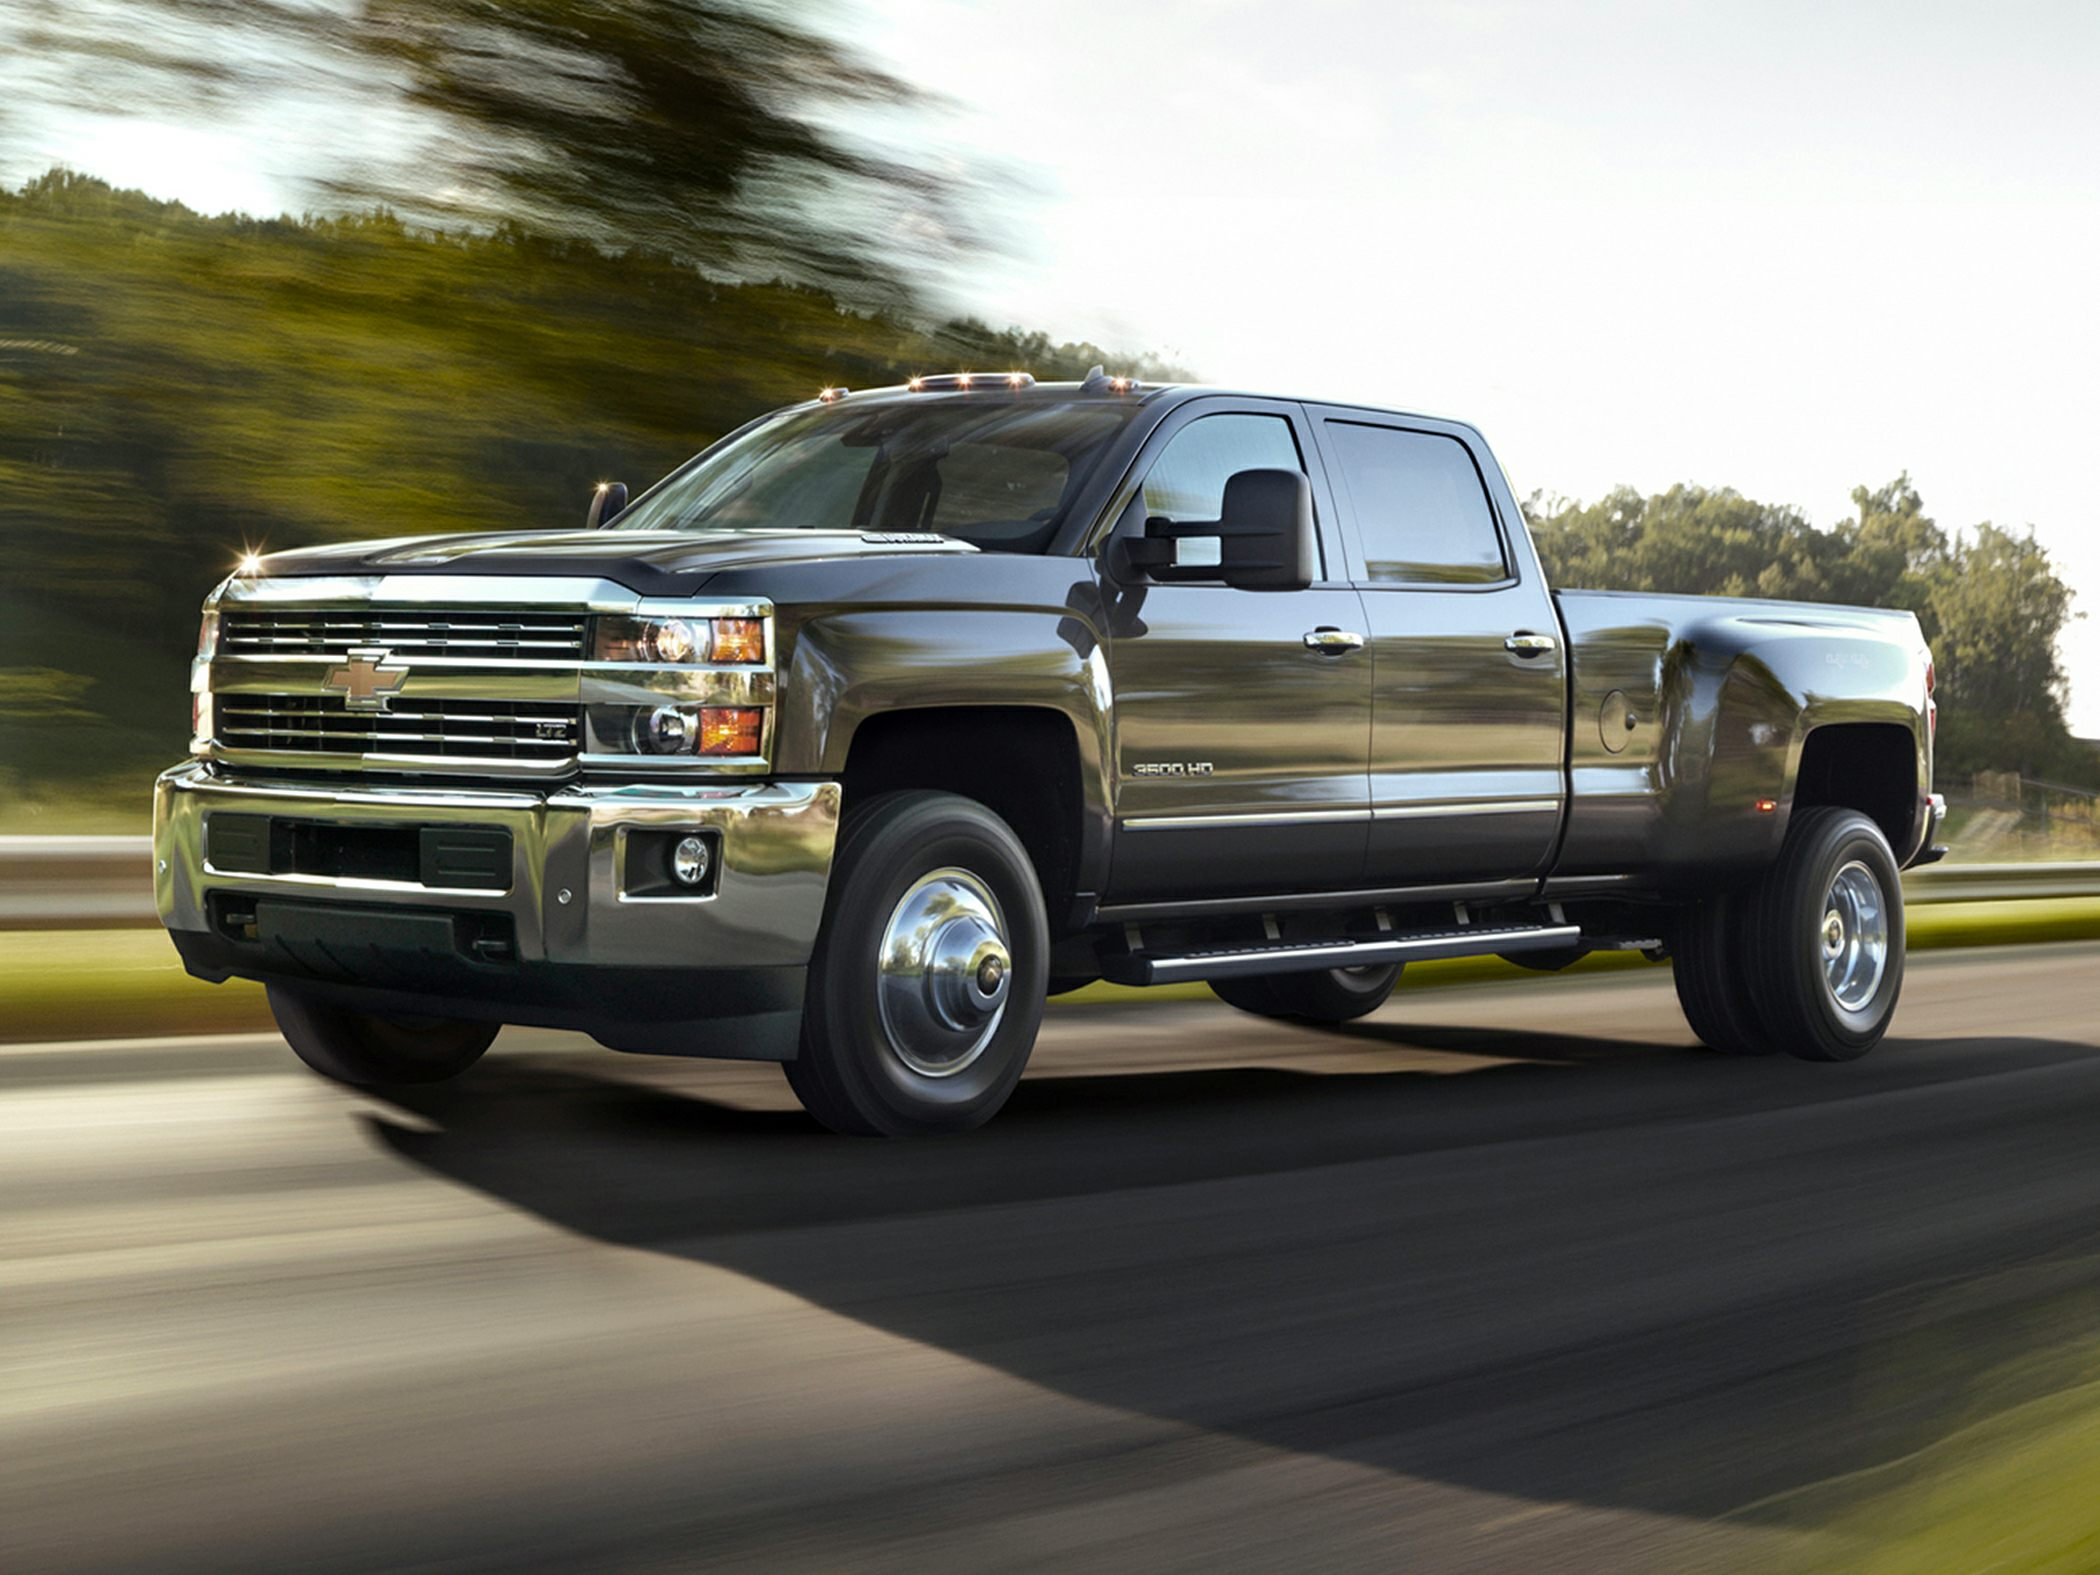 The Gest Difference Ers Will Run Into Is That Regular And Double Cabs Are No Longer Available Crew Cab Now Reigns Supreme